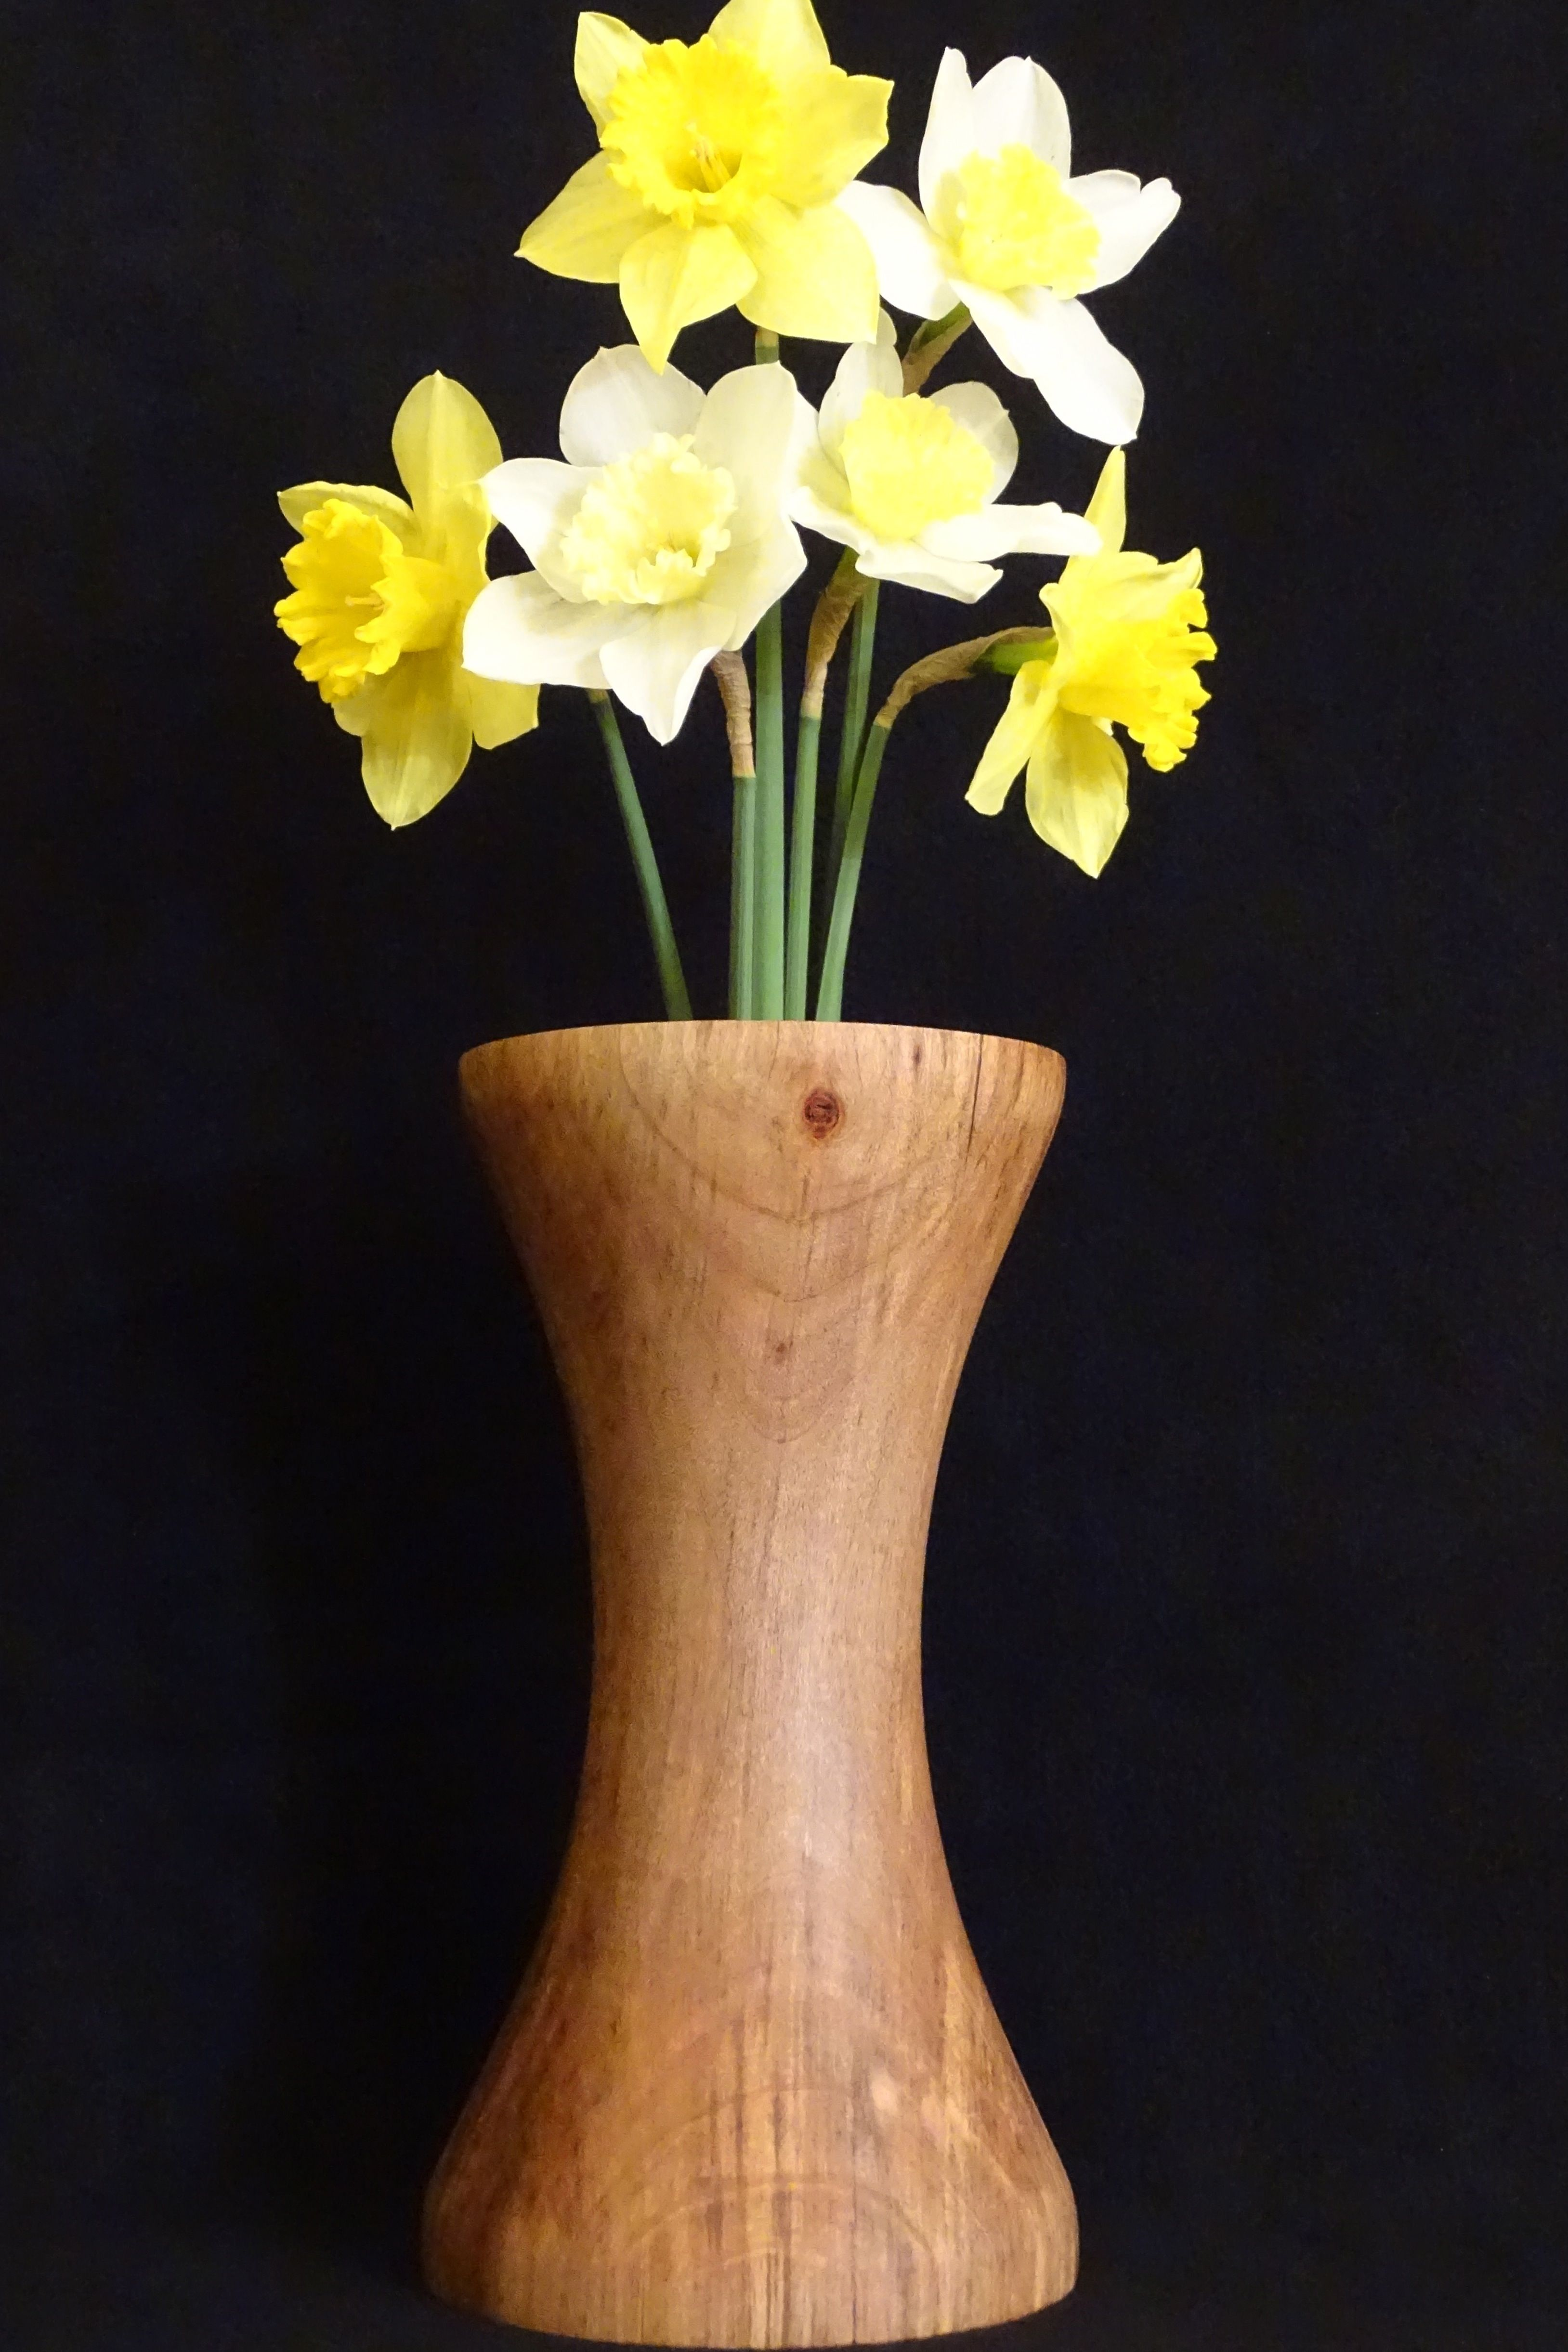 Hand turned maple wood flower vase httpsetsylisting tall wood flower vase includes a glass center for holding water for fresh flowers all natural handcrafted wooden decor made in oregon reviewsmspy